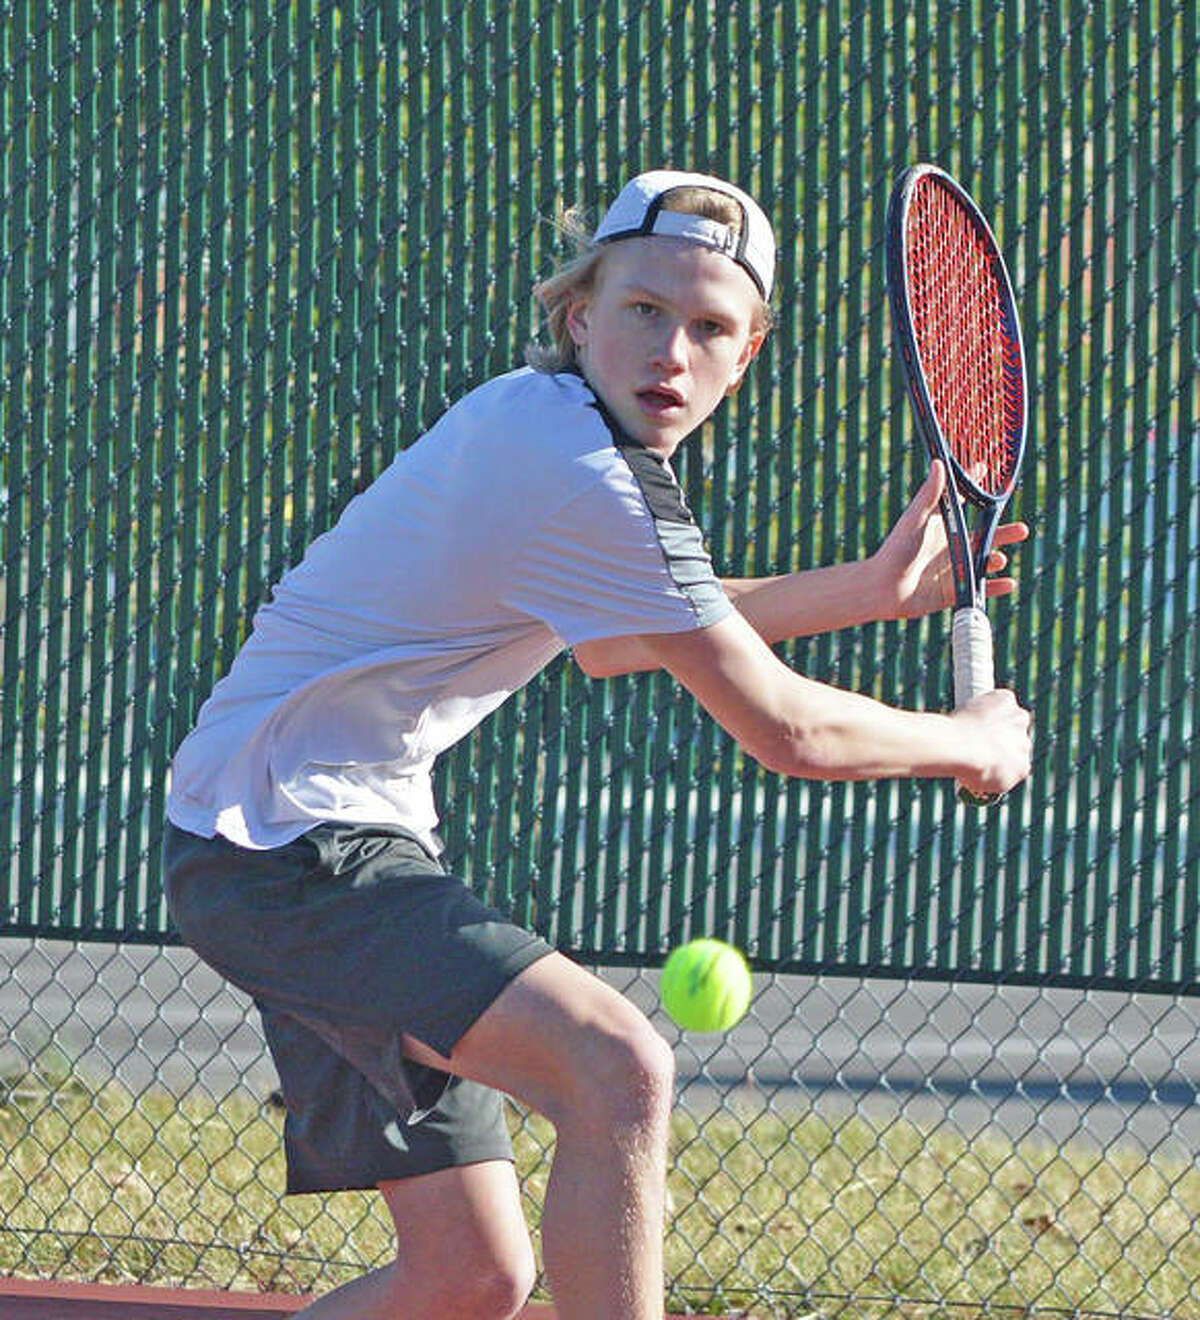 Edwardsville sophomore Sam Motley makes a backhand return during practice on Tuesday. Motley is one of several players competing for the No. 1 singles position.